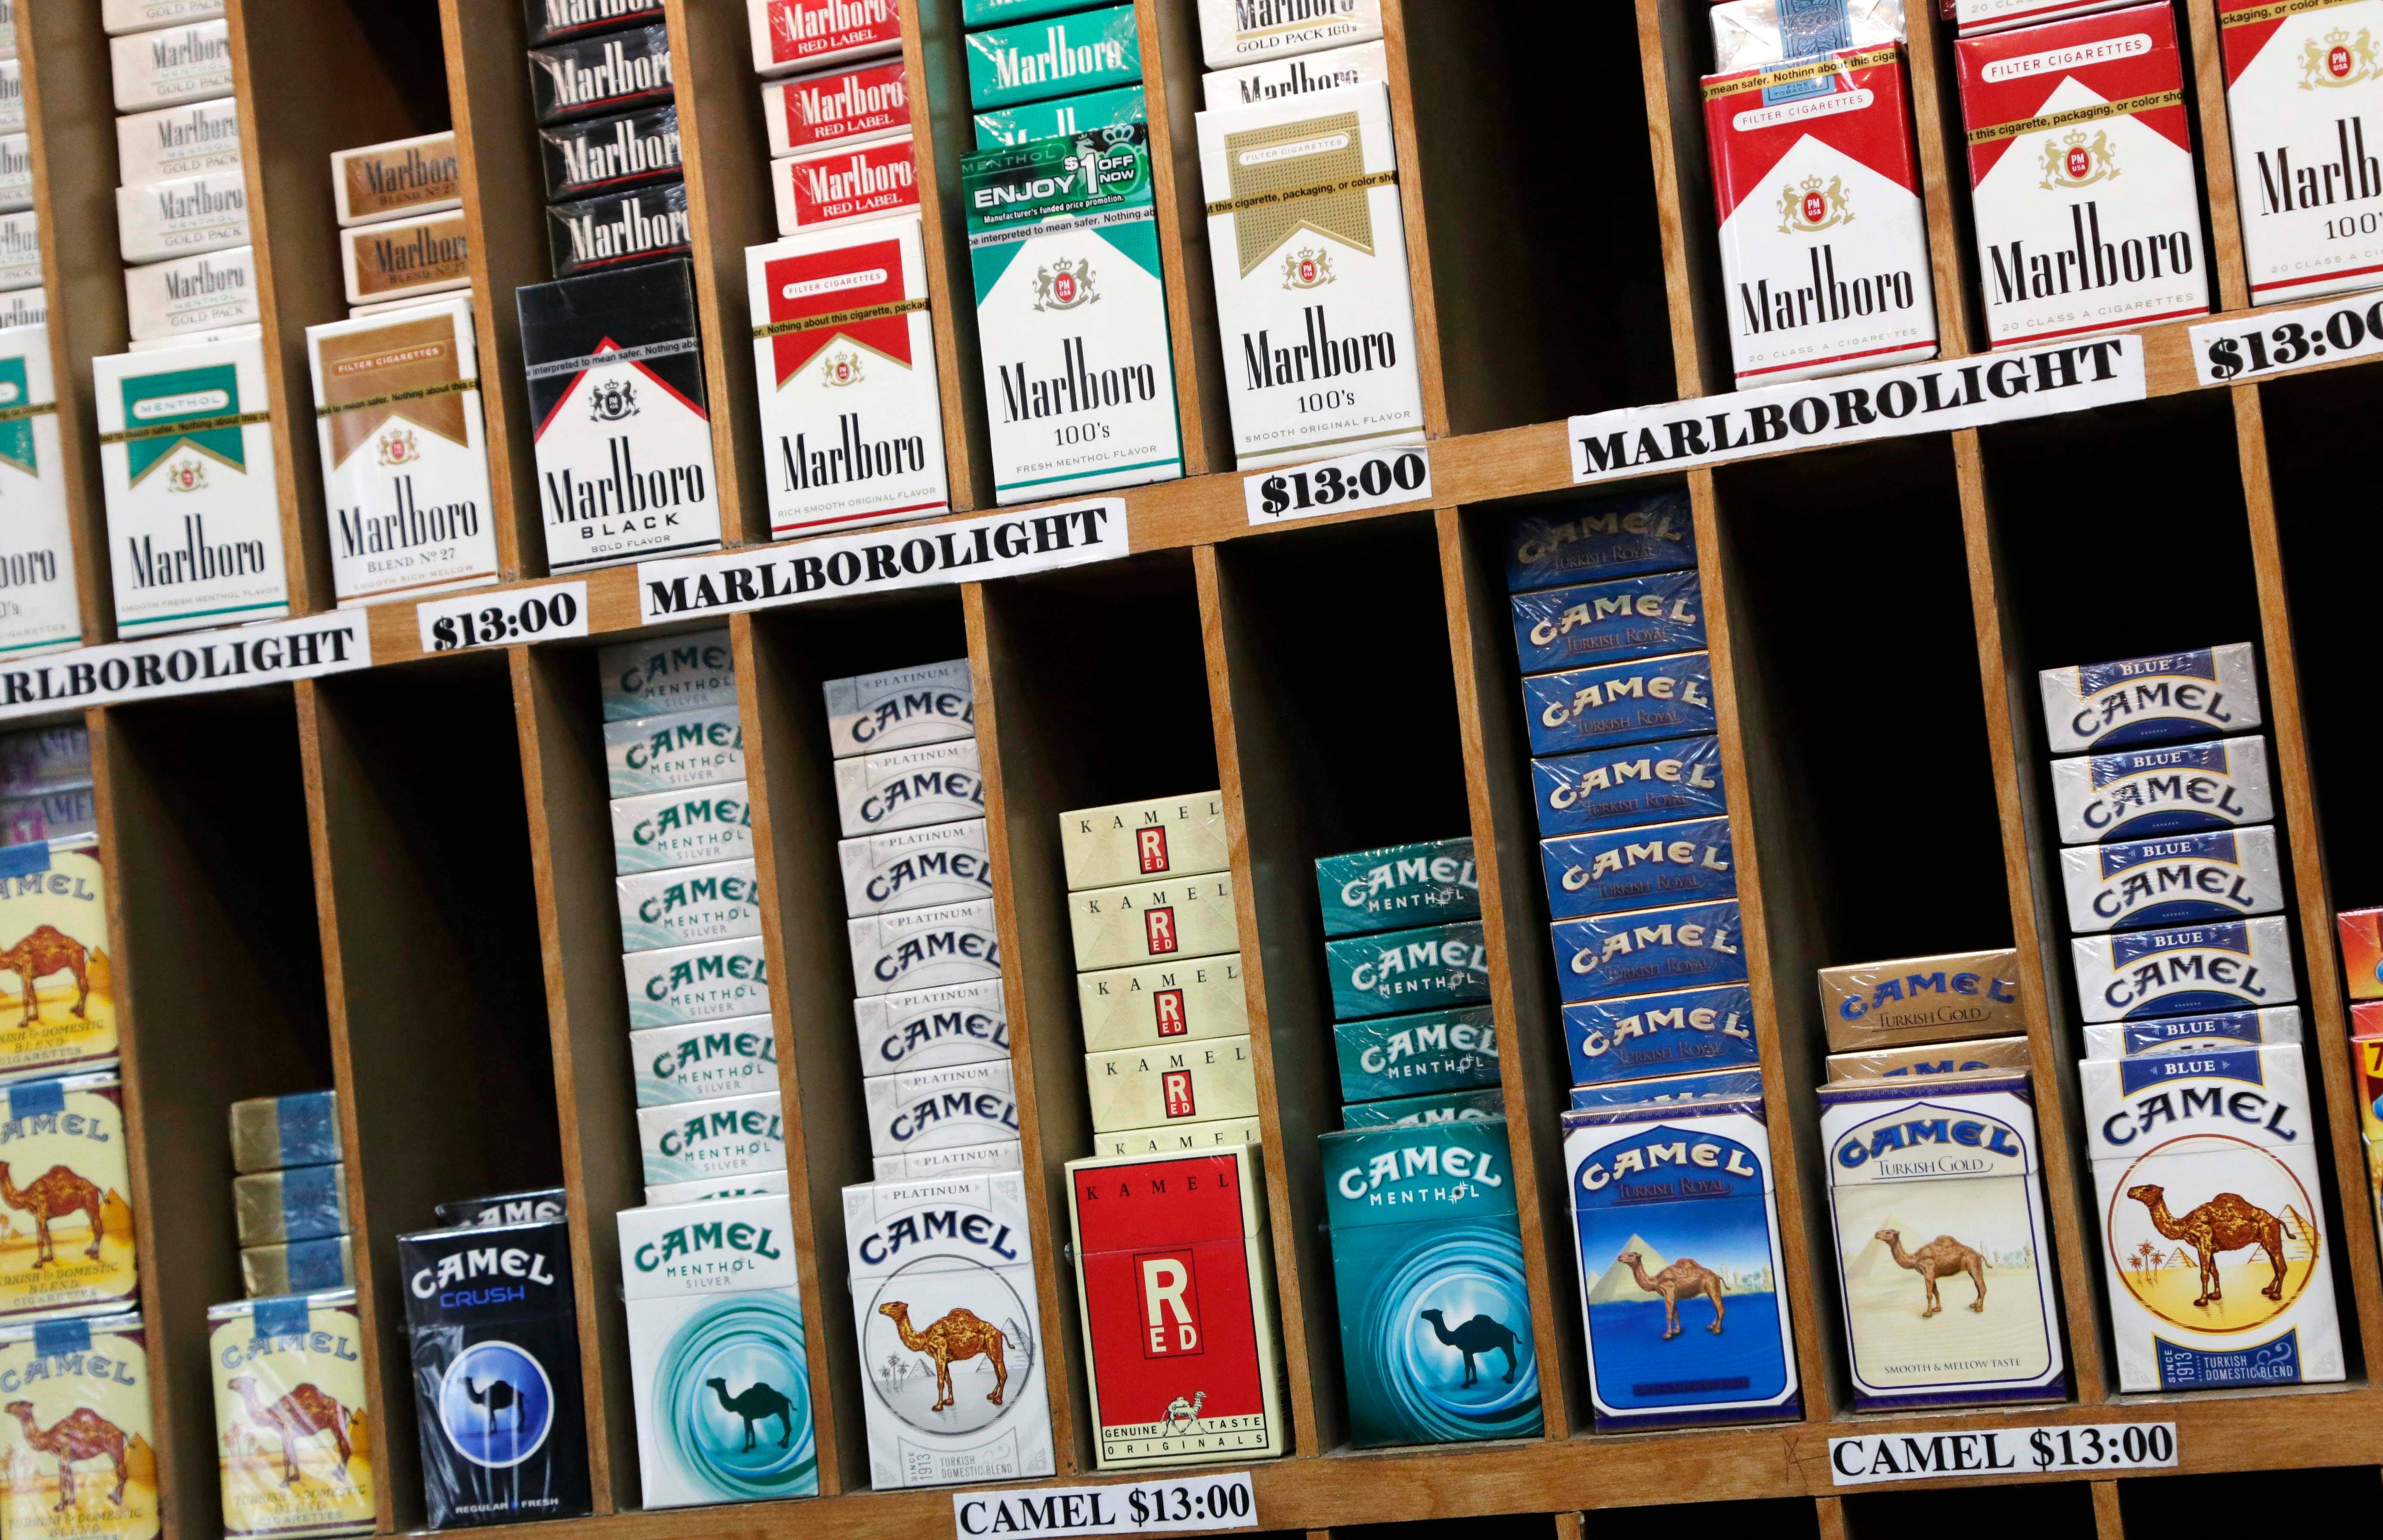 Starting March 1, you'll have to be at least 21 years old to buy tobacco or e-cigarette products in Mundelein. A divided Mundelein village board on Monday approved a measure hiking the age from 18.